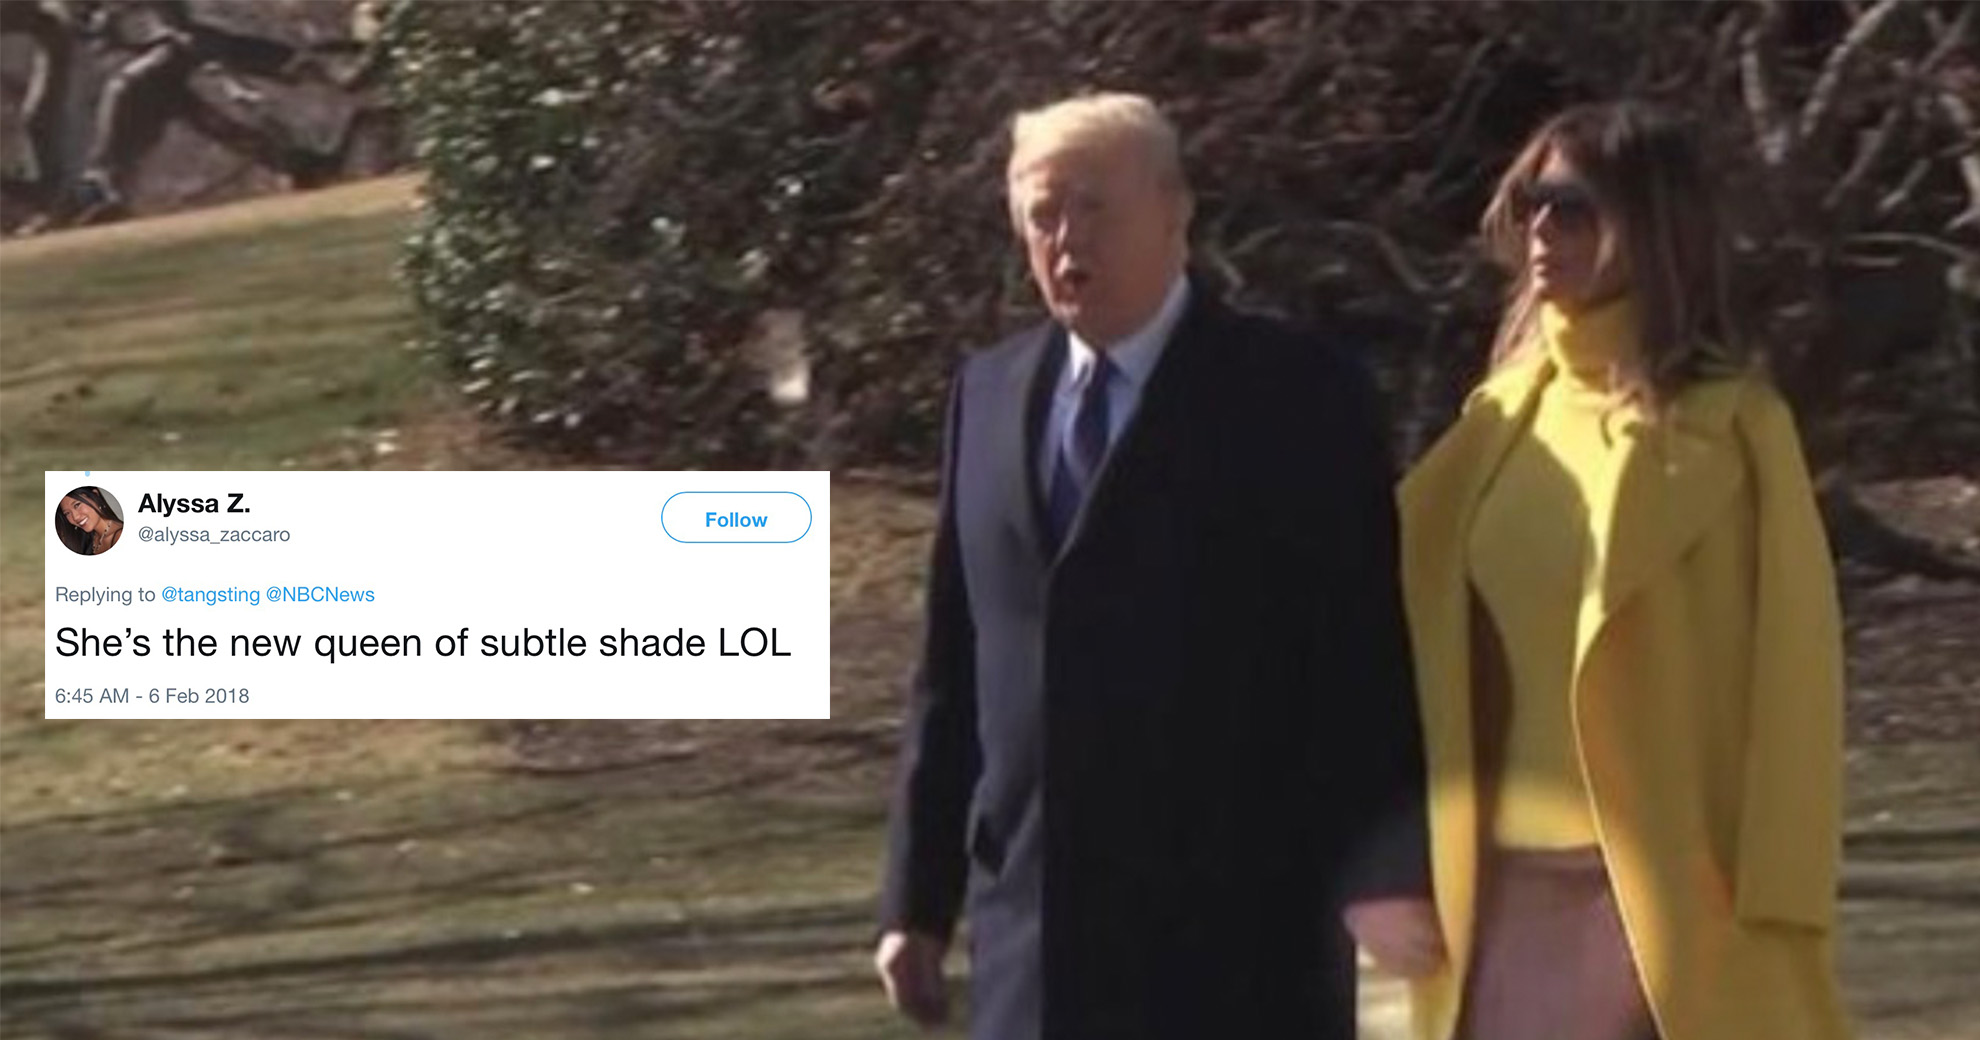 Awkward Video Of Donald And Melania Trump Emerges—And Twitter Has Theories